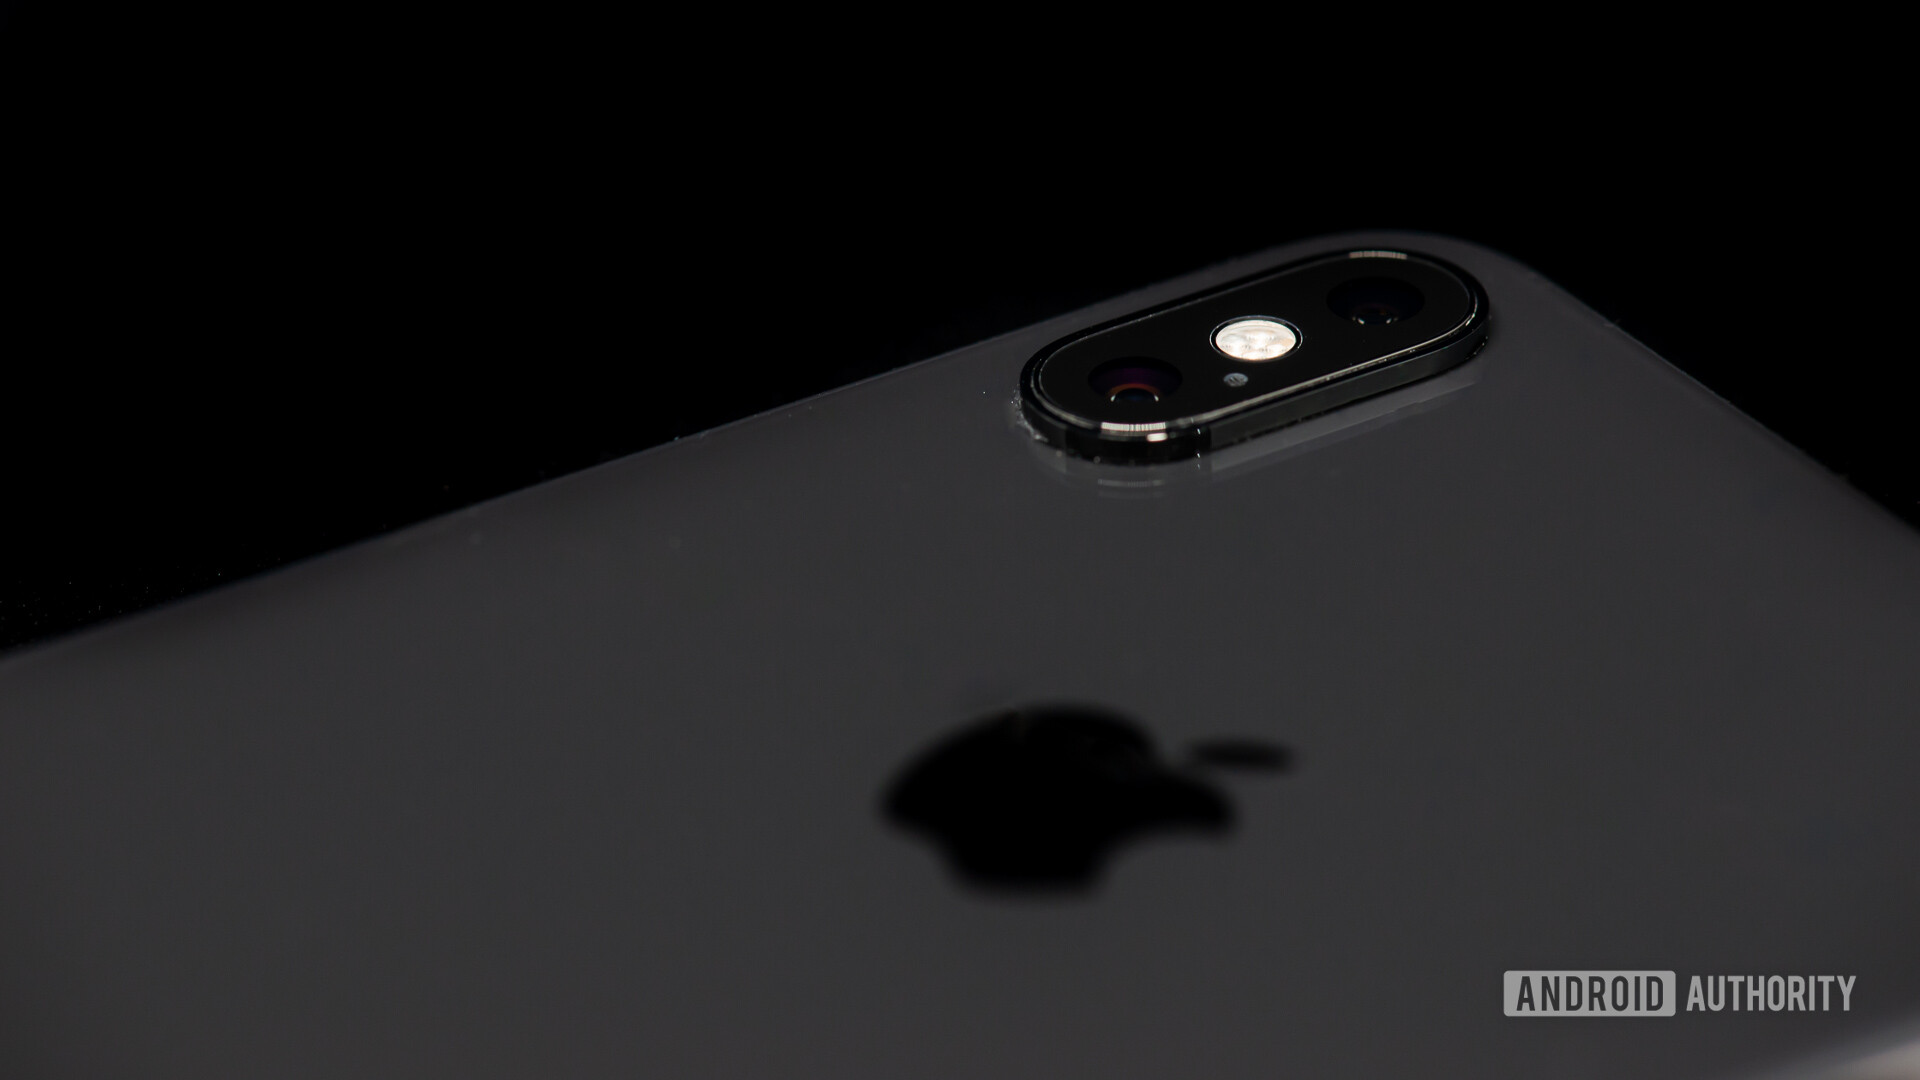 iPhone XS Max closeup on camera module and Apple logo